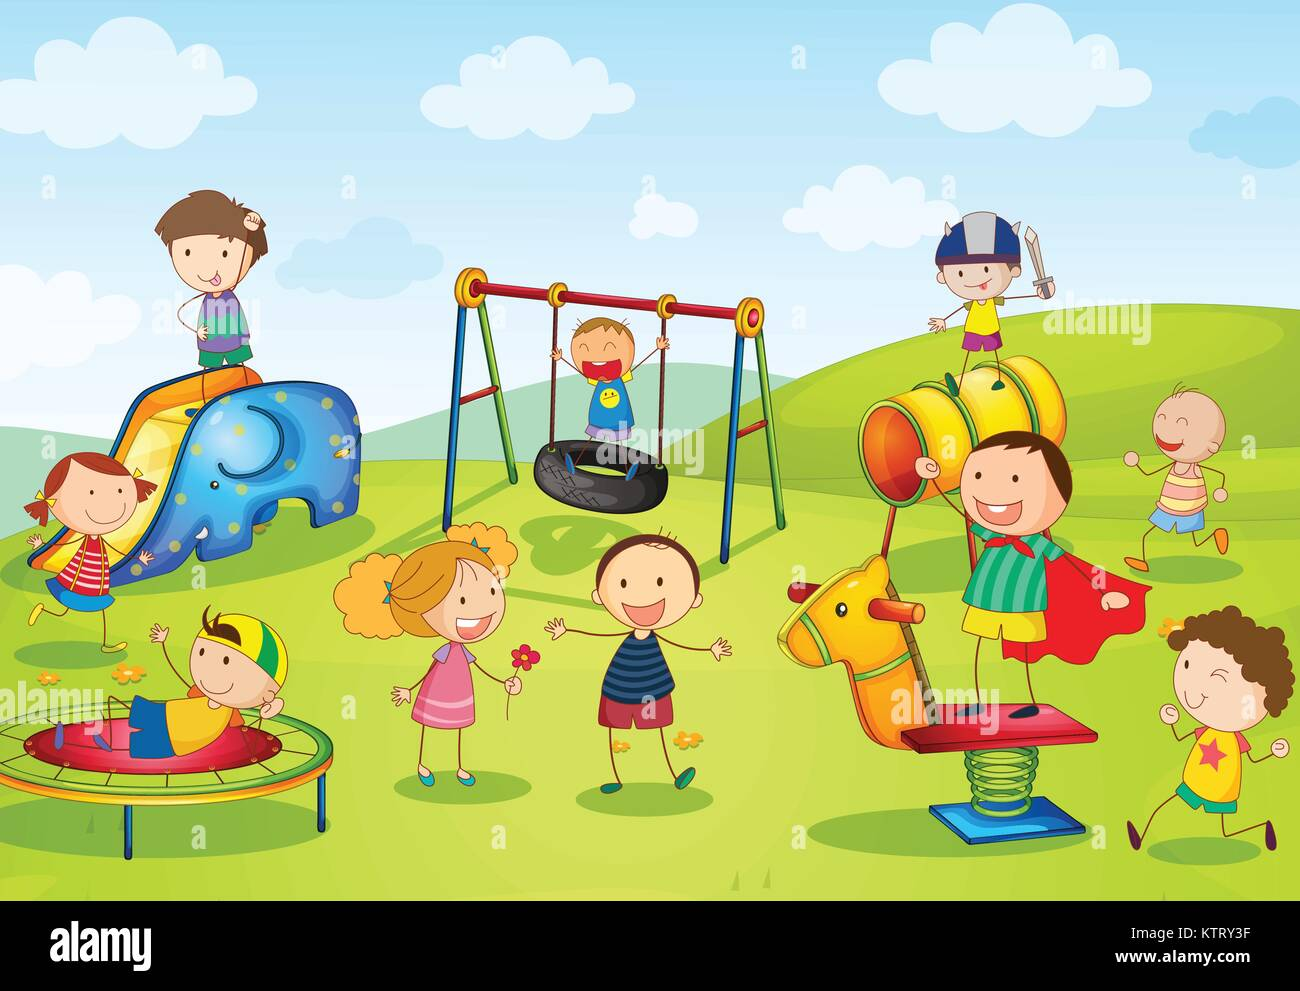 Illustration Of Kids Playing At The Park Stock Vector Art